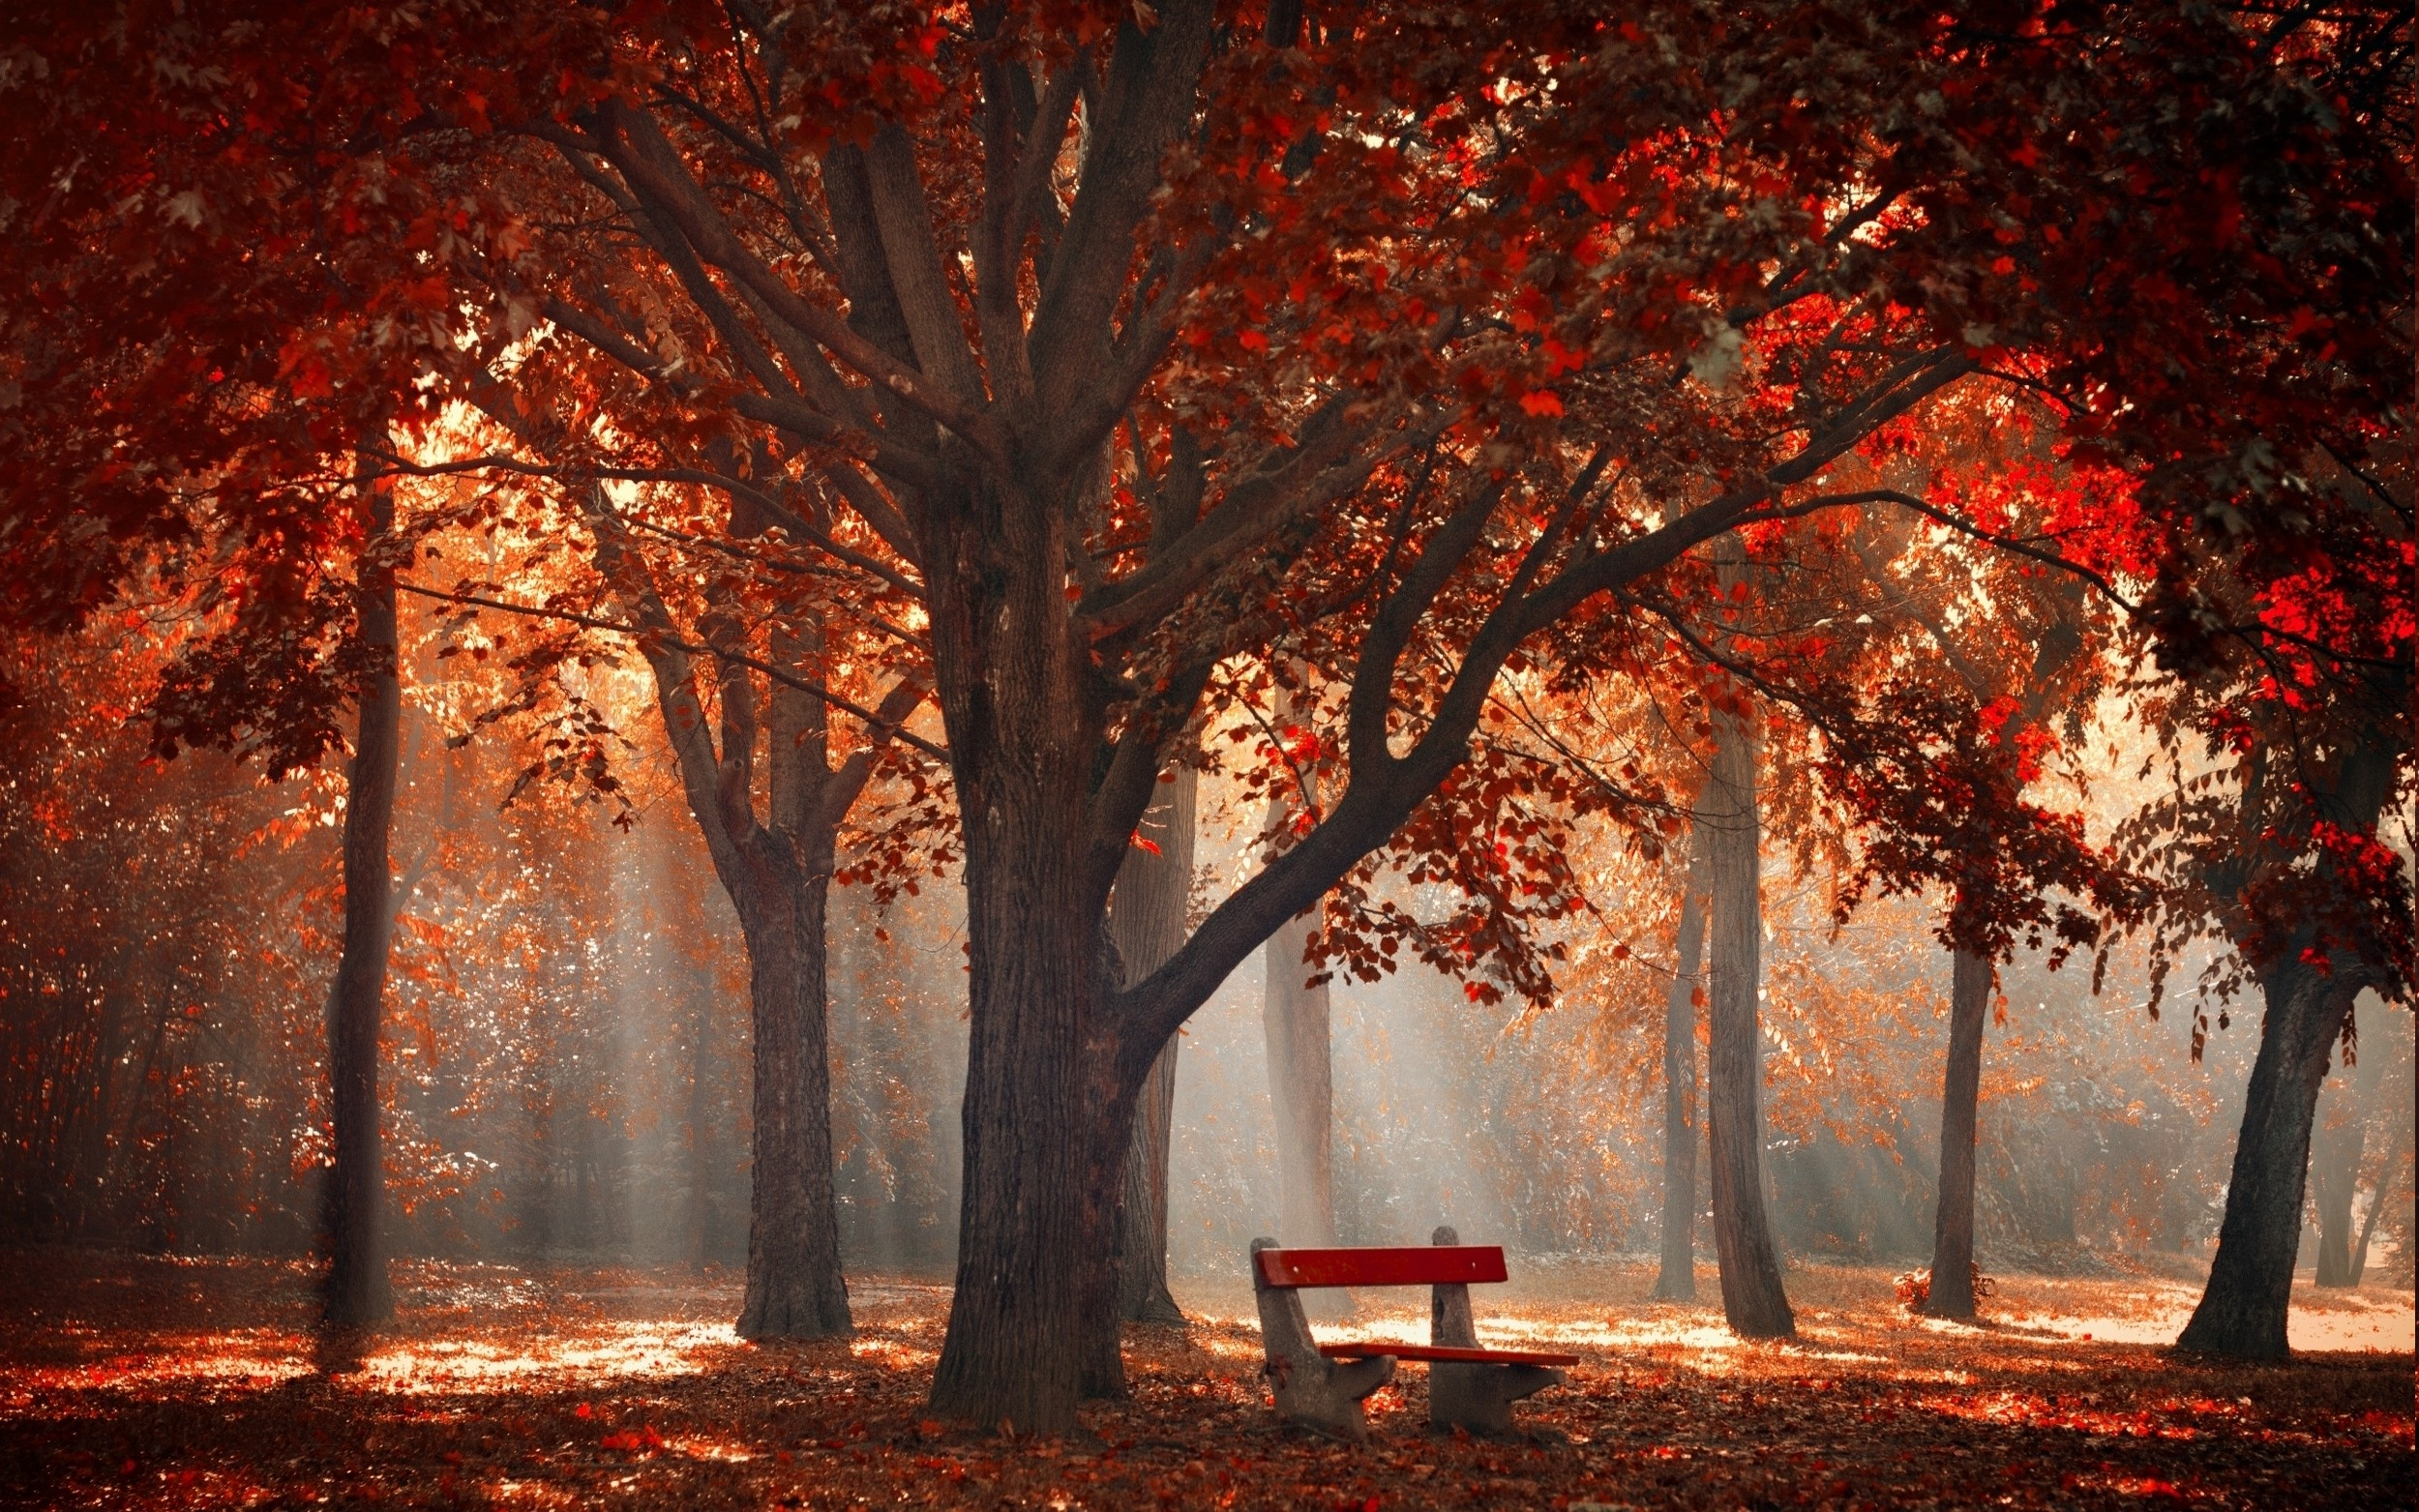 Fall Leaves Desktop Wallpaper Backgrounds Nature Landscape Park Trees Fall Mist Leaves Bench